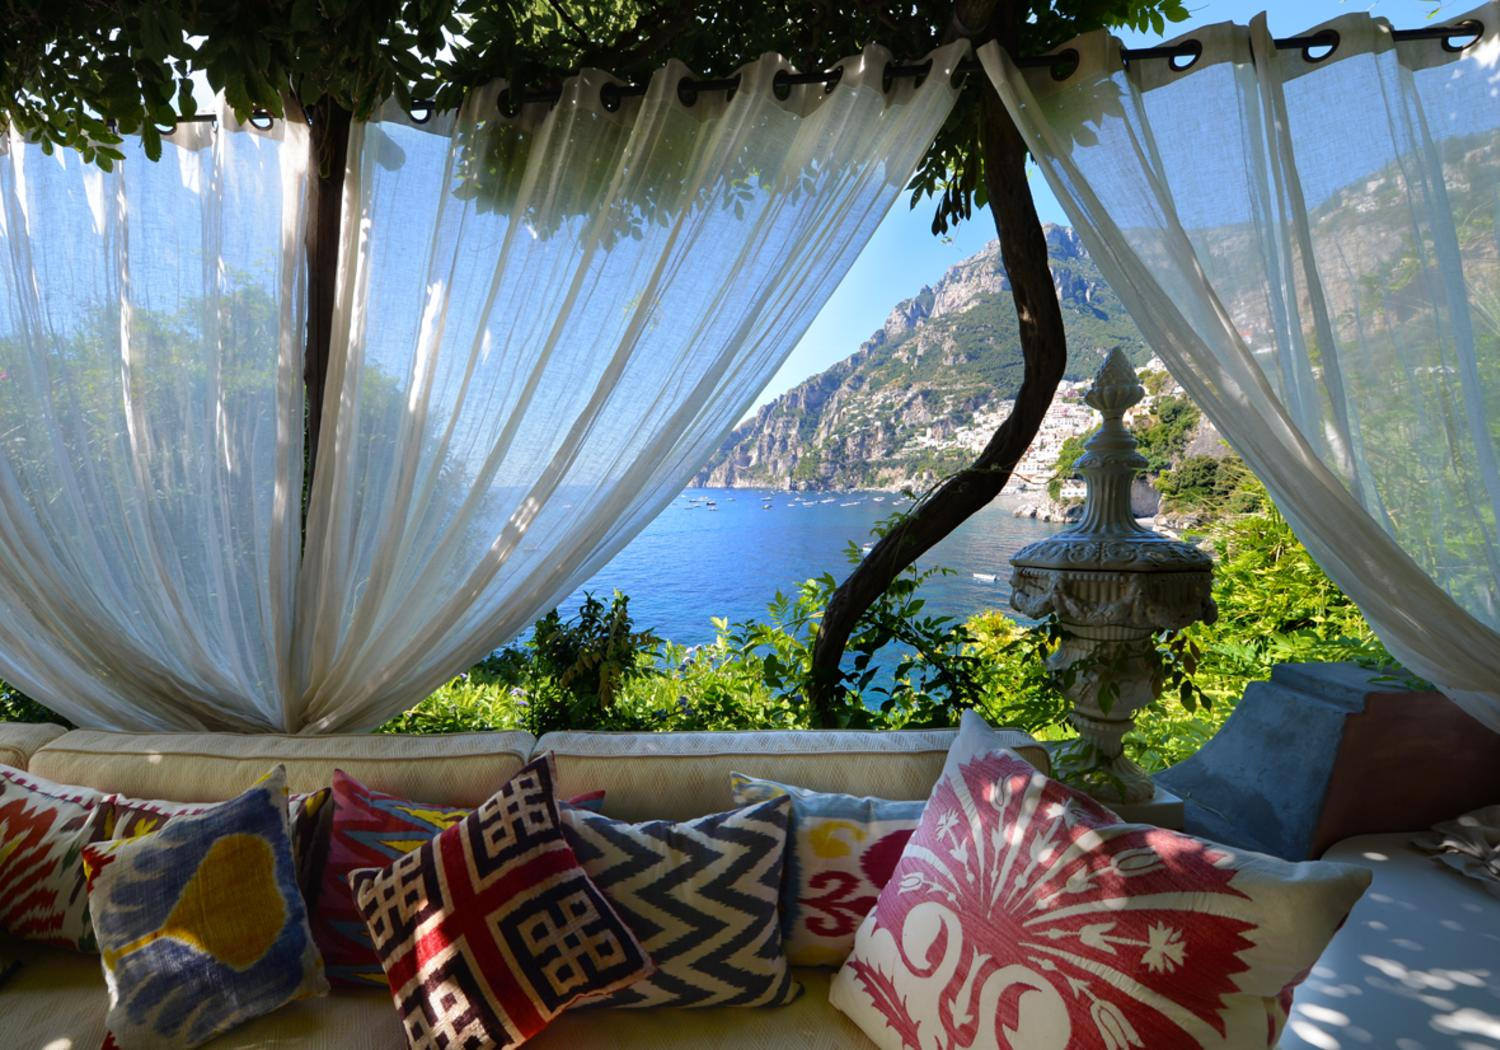 Covered Outdoor seating, La Divina, Positano, Amalfi Coast Campania.